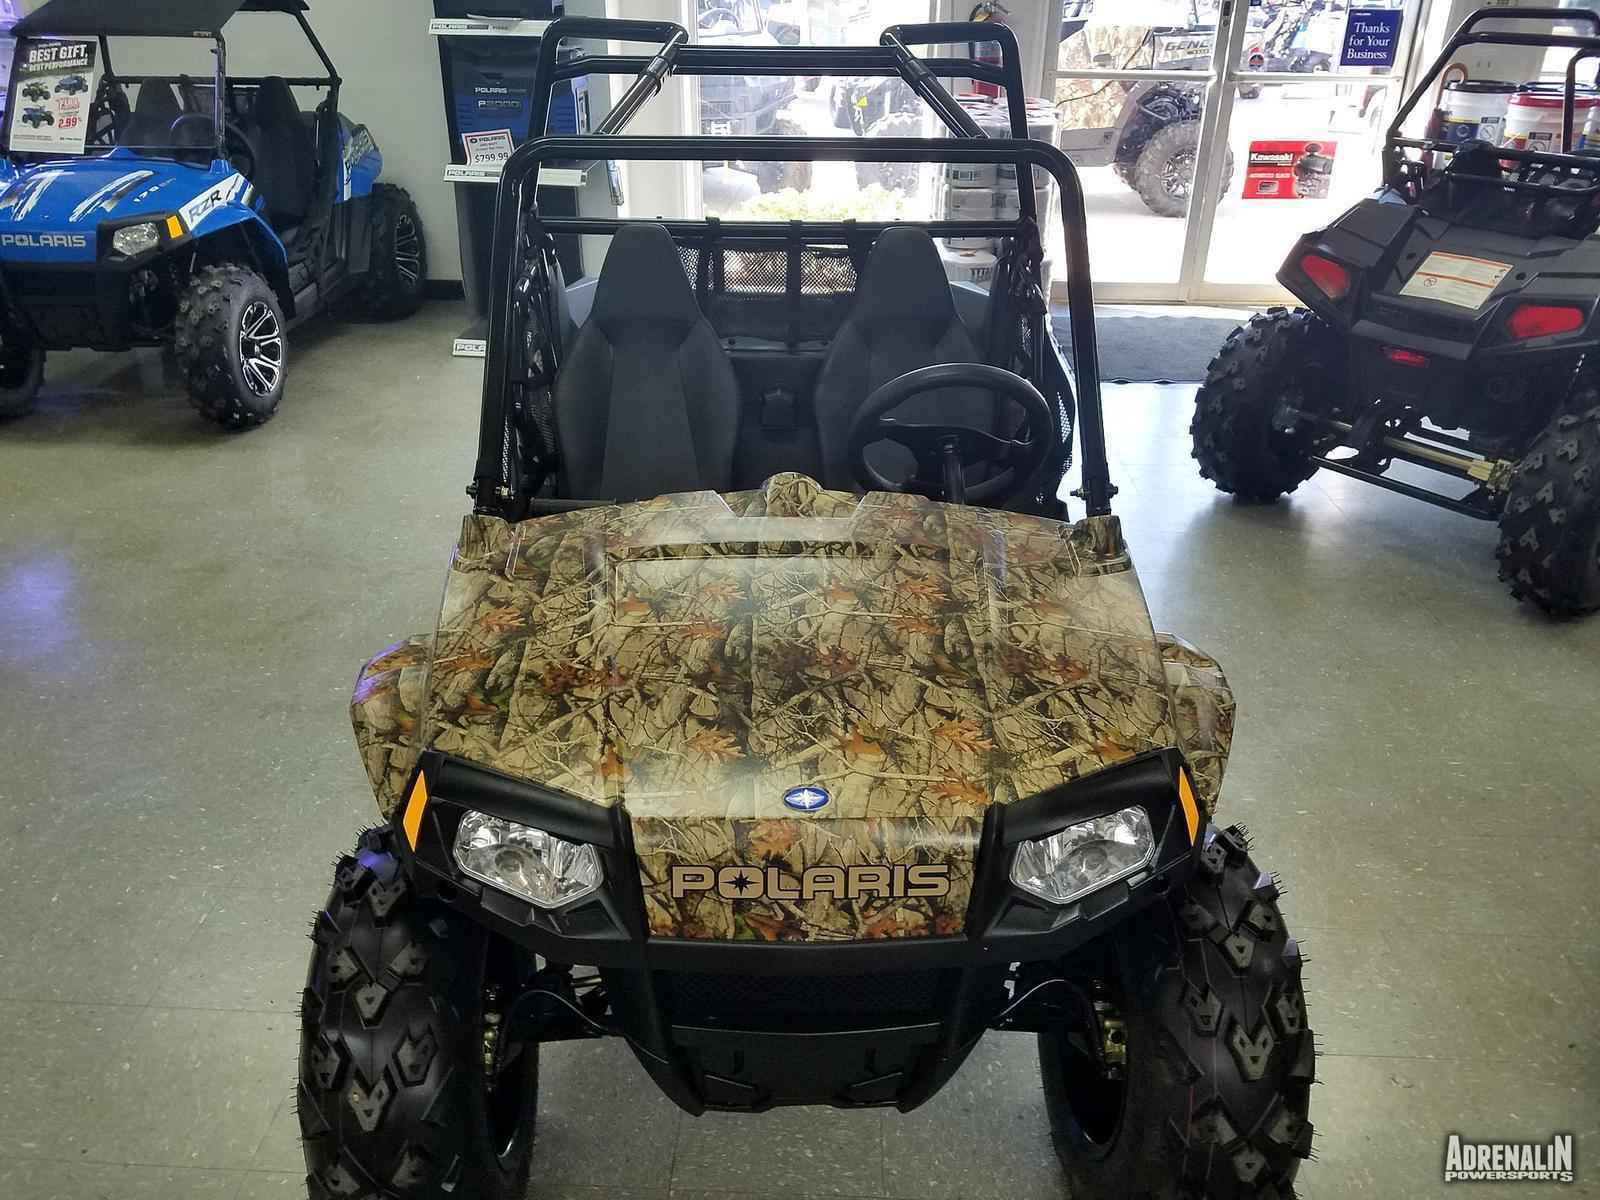 Camo Polaris Razor Atv Free Download Rzr 170 Wiring Diagram New 2016 Efi Accessorized Atvs For Sale In Kawasaki At